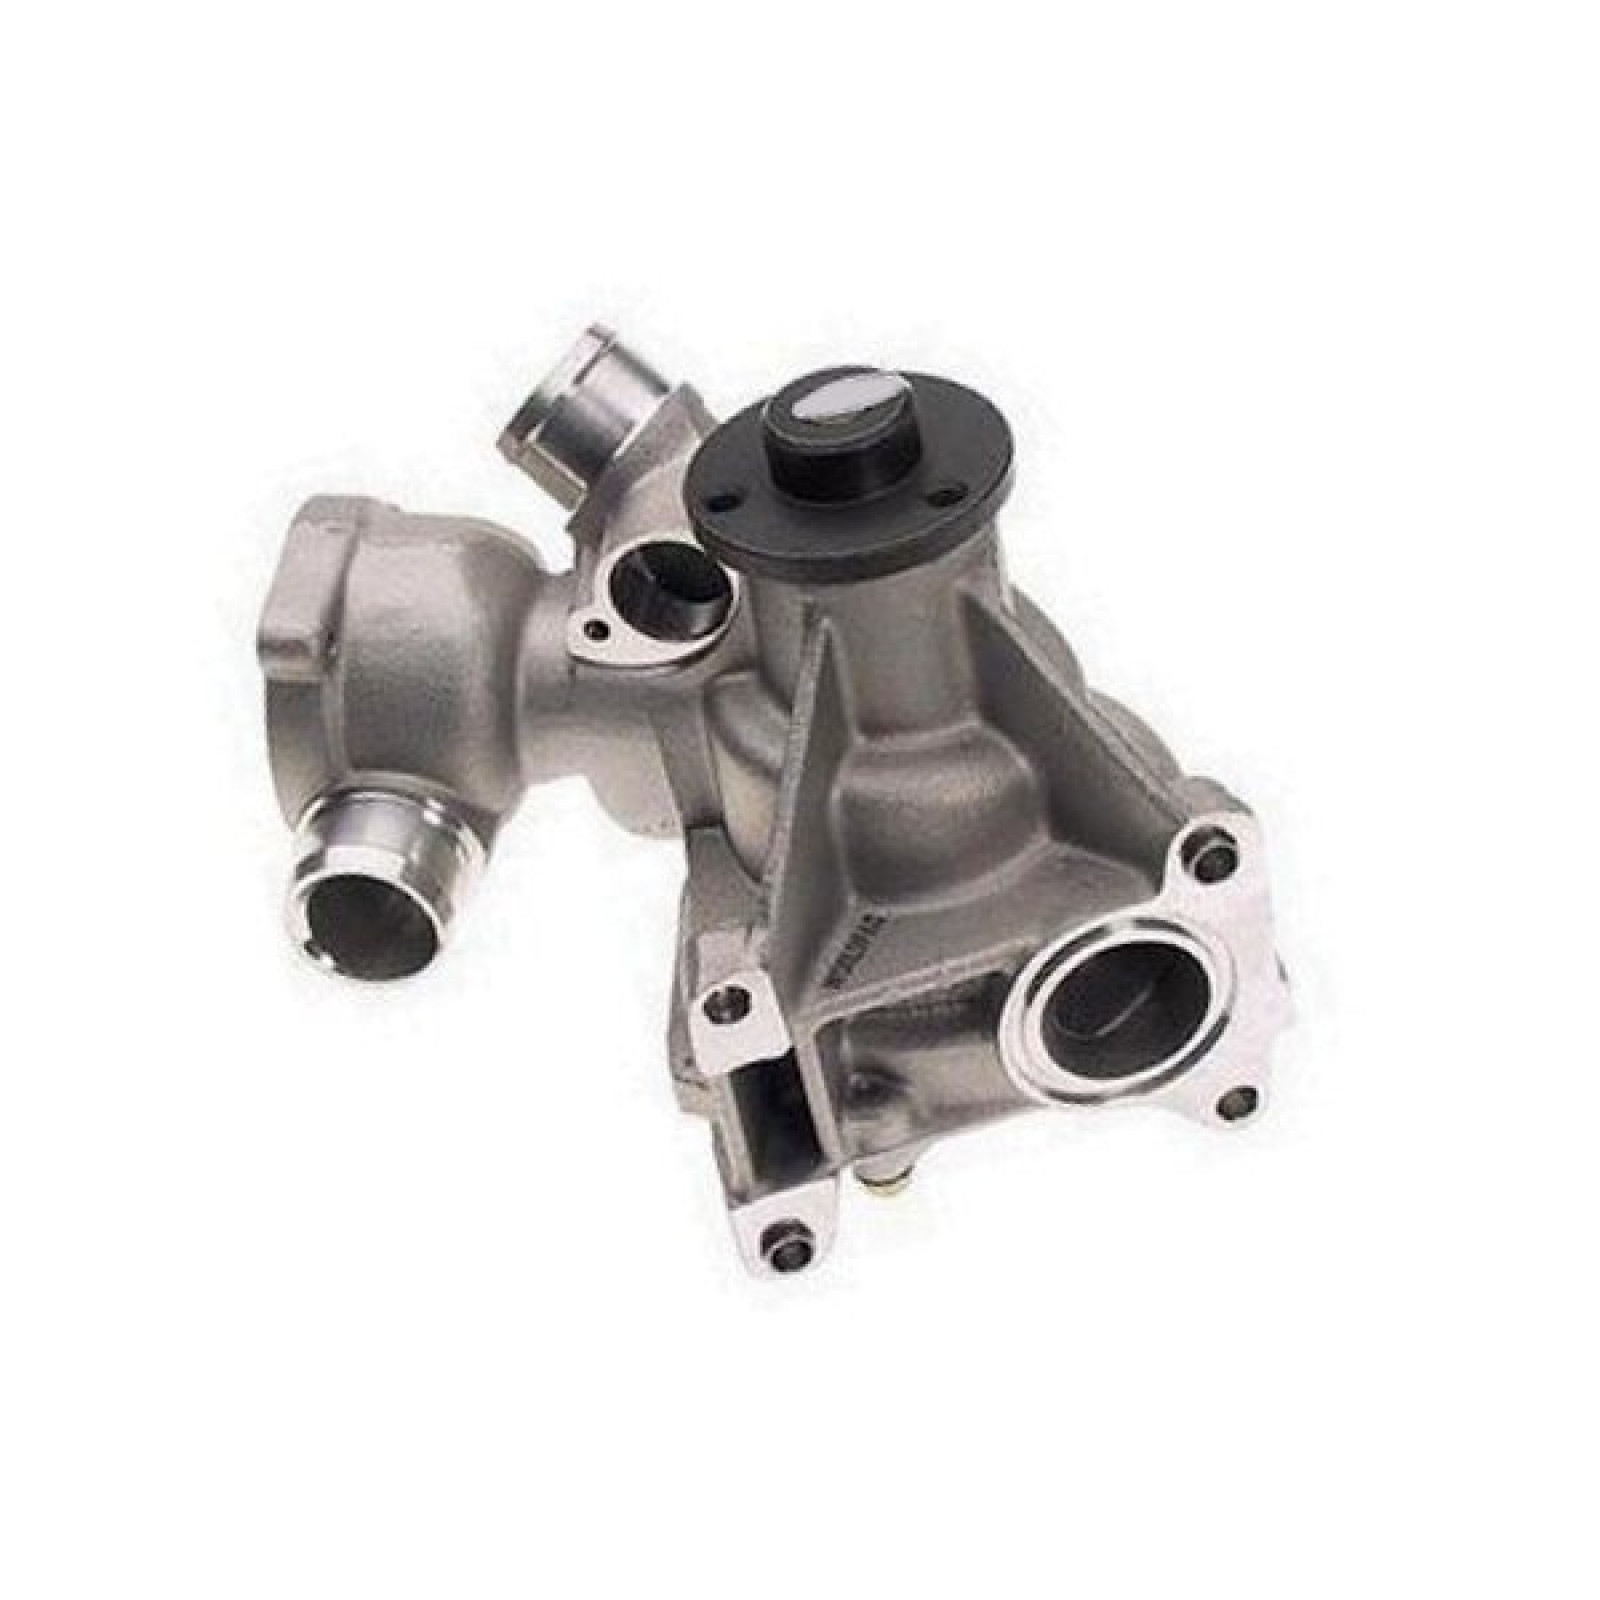 Mercedes benz m103 engine water pump 1032000401 the sl for Mercedes benz engine number check